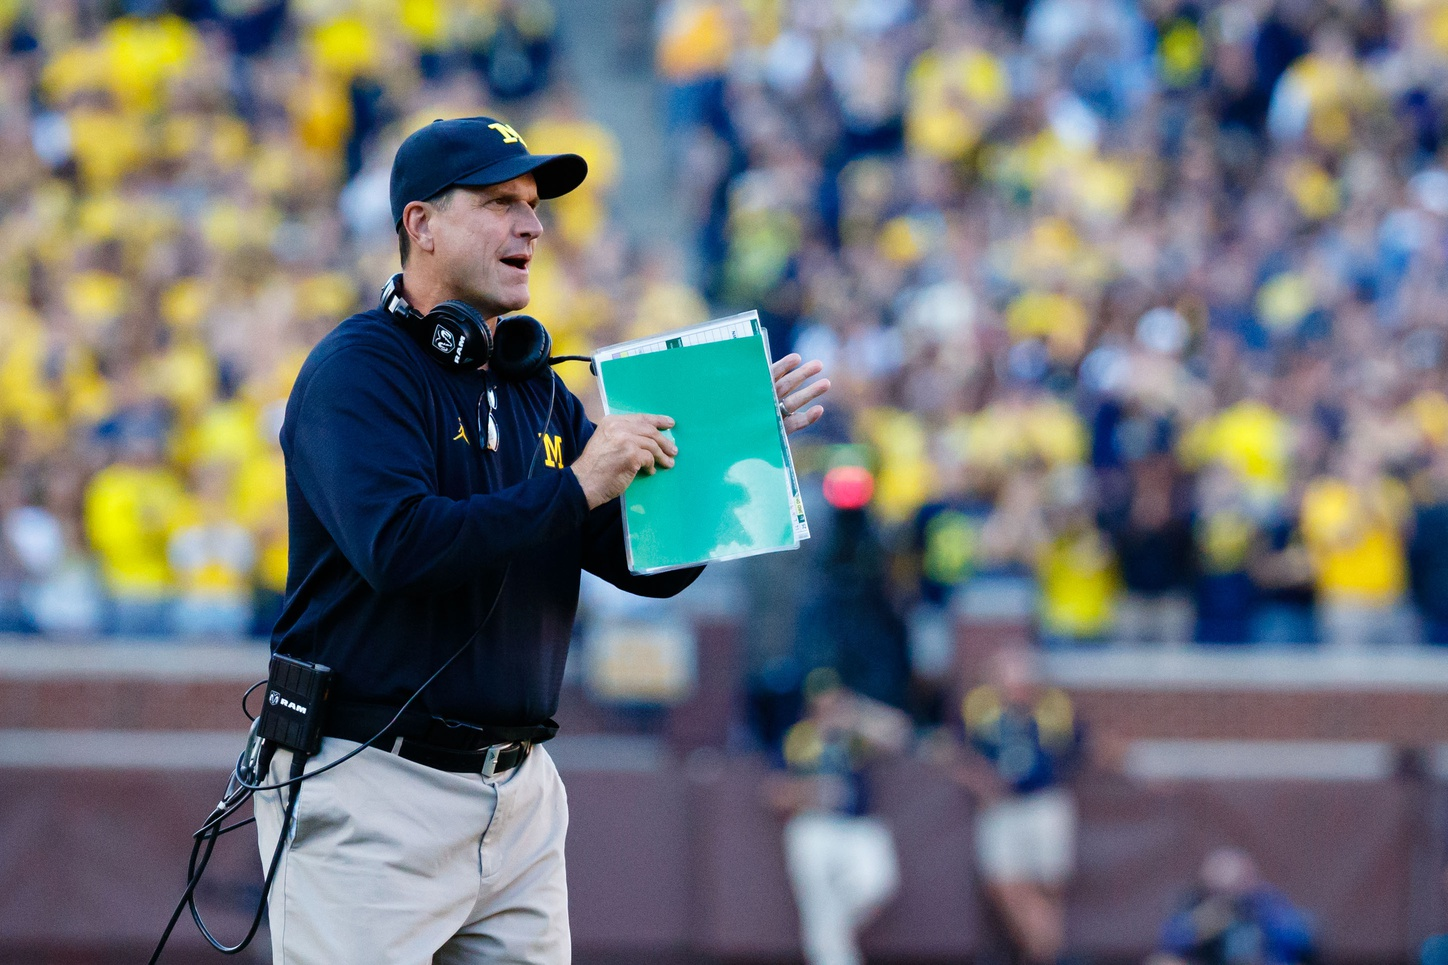 Questions We're Asking: Did Michigan Come Out On Top This Week?